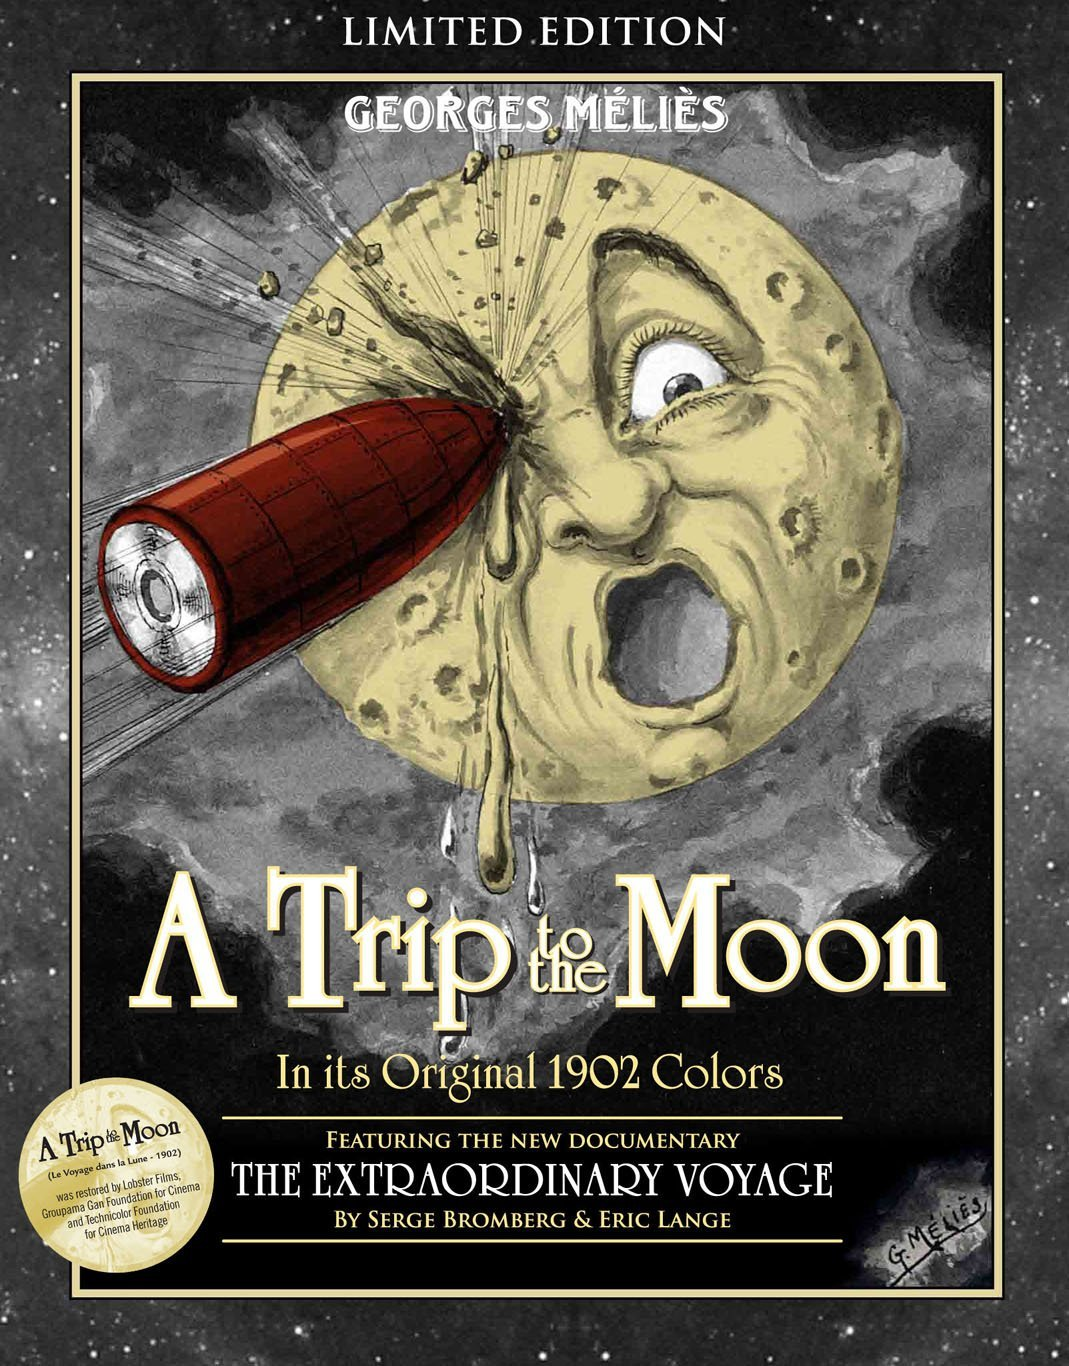 A TRIP TO THE MOON Blu-ray SteelBook